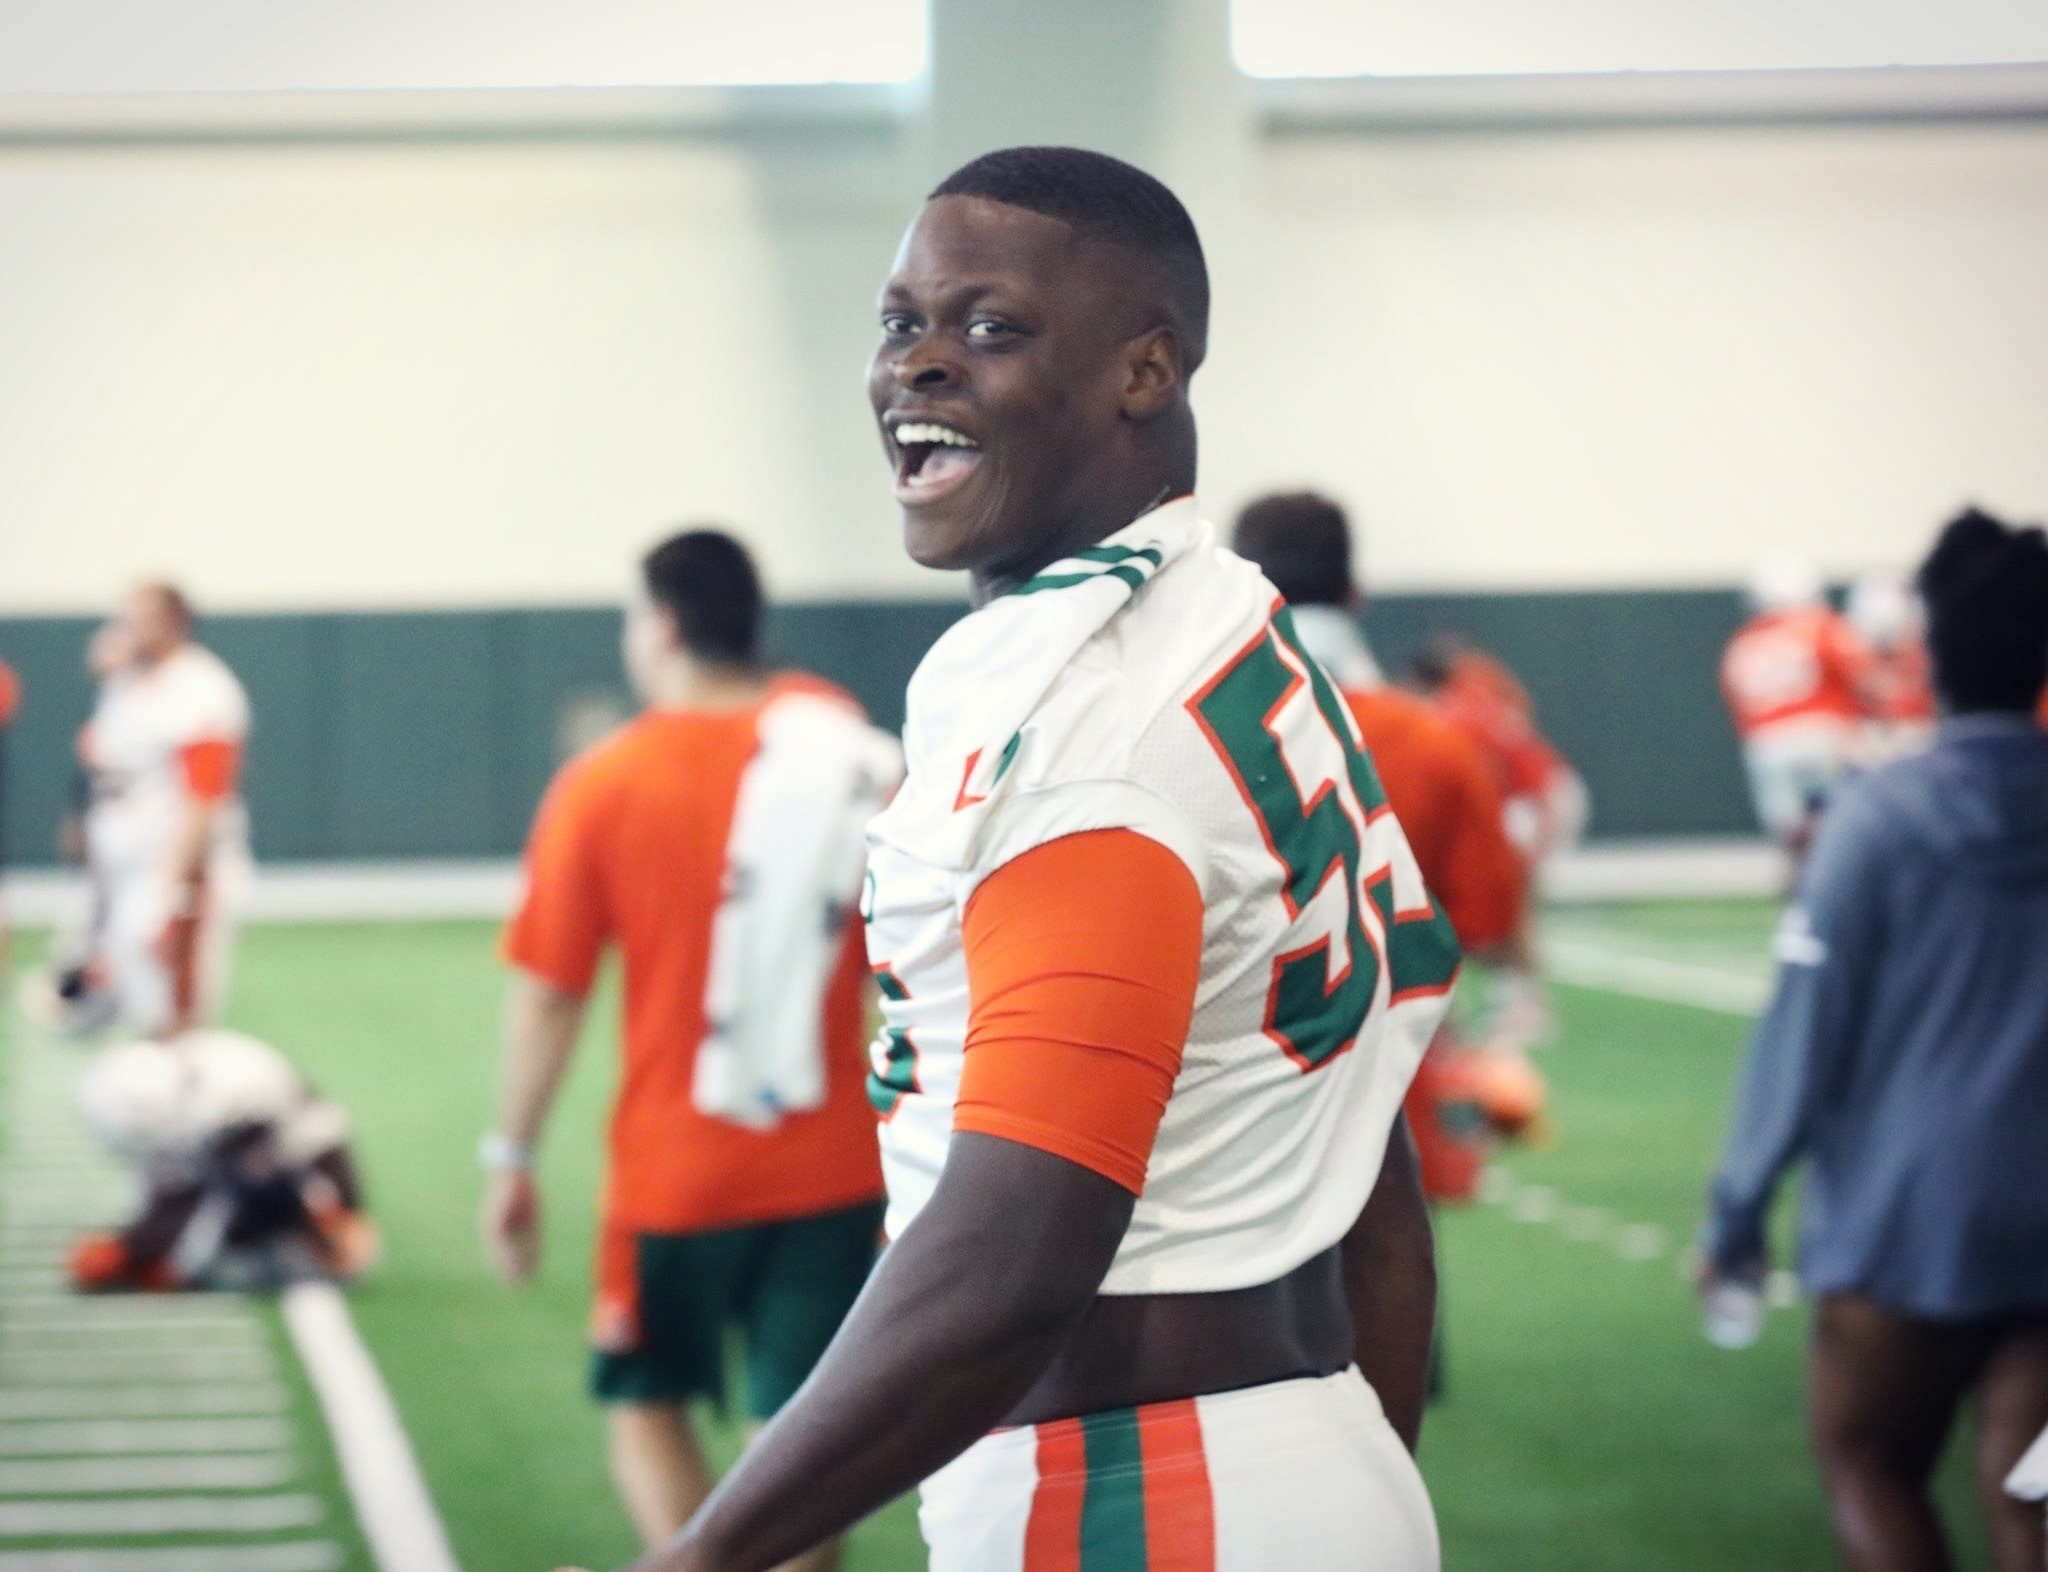 Sfl-photos-um-s-first-practice-inside-the-carol-soffer-indoor-practice-facility-20180817